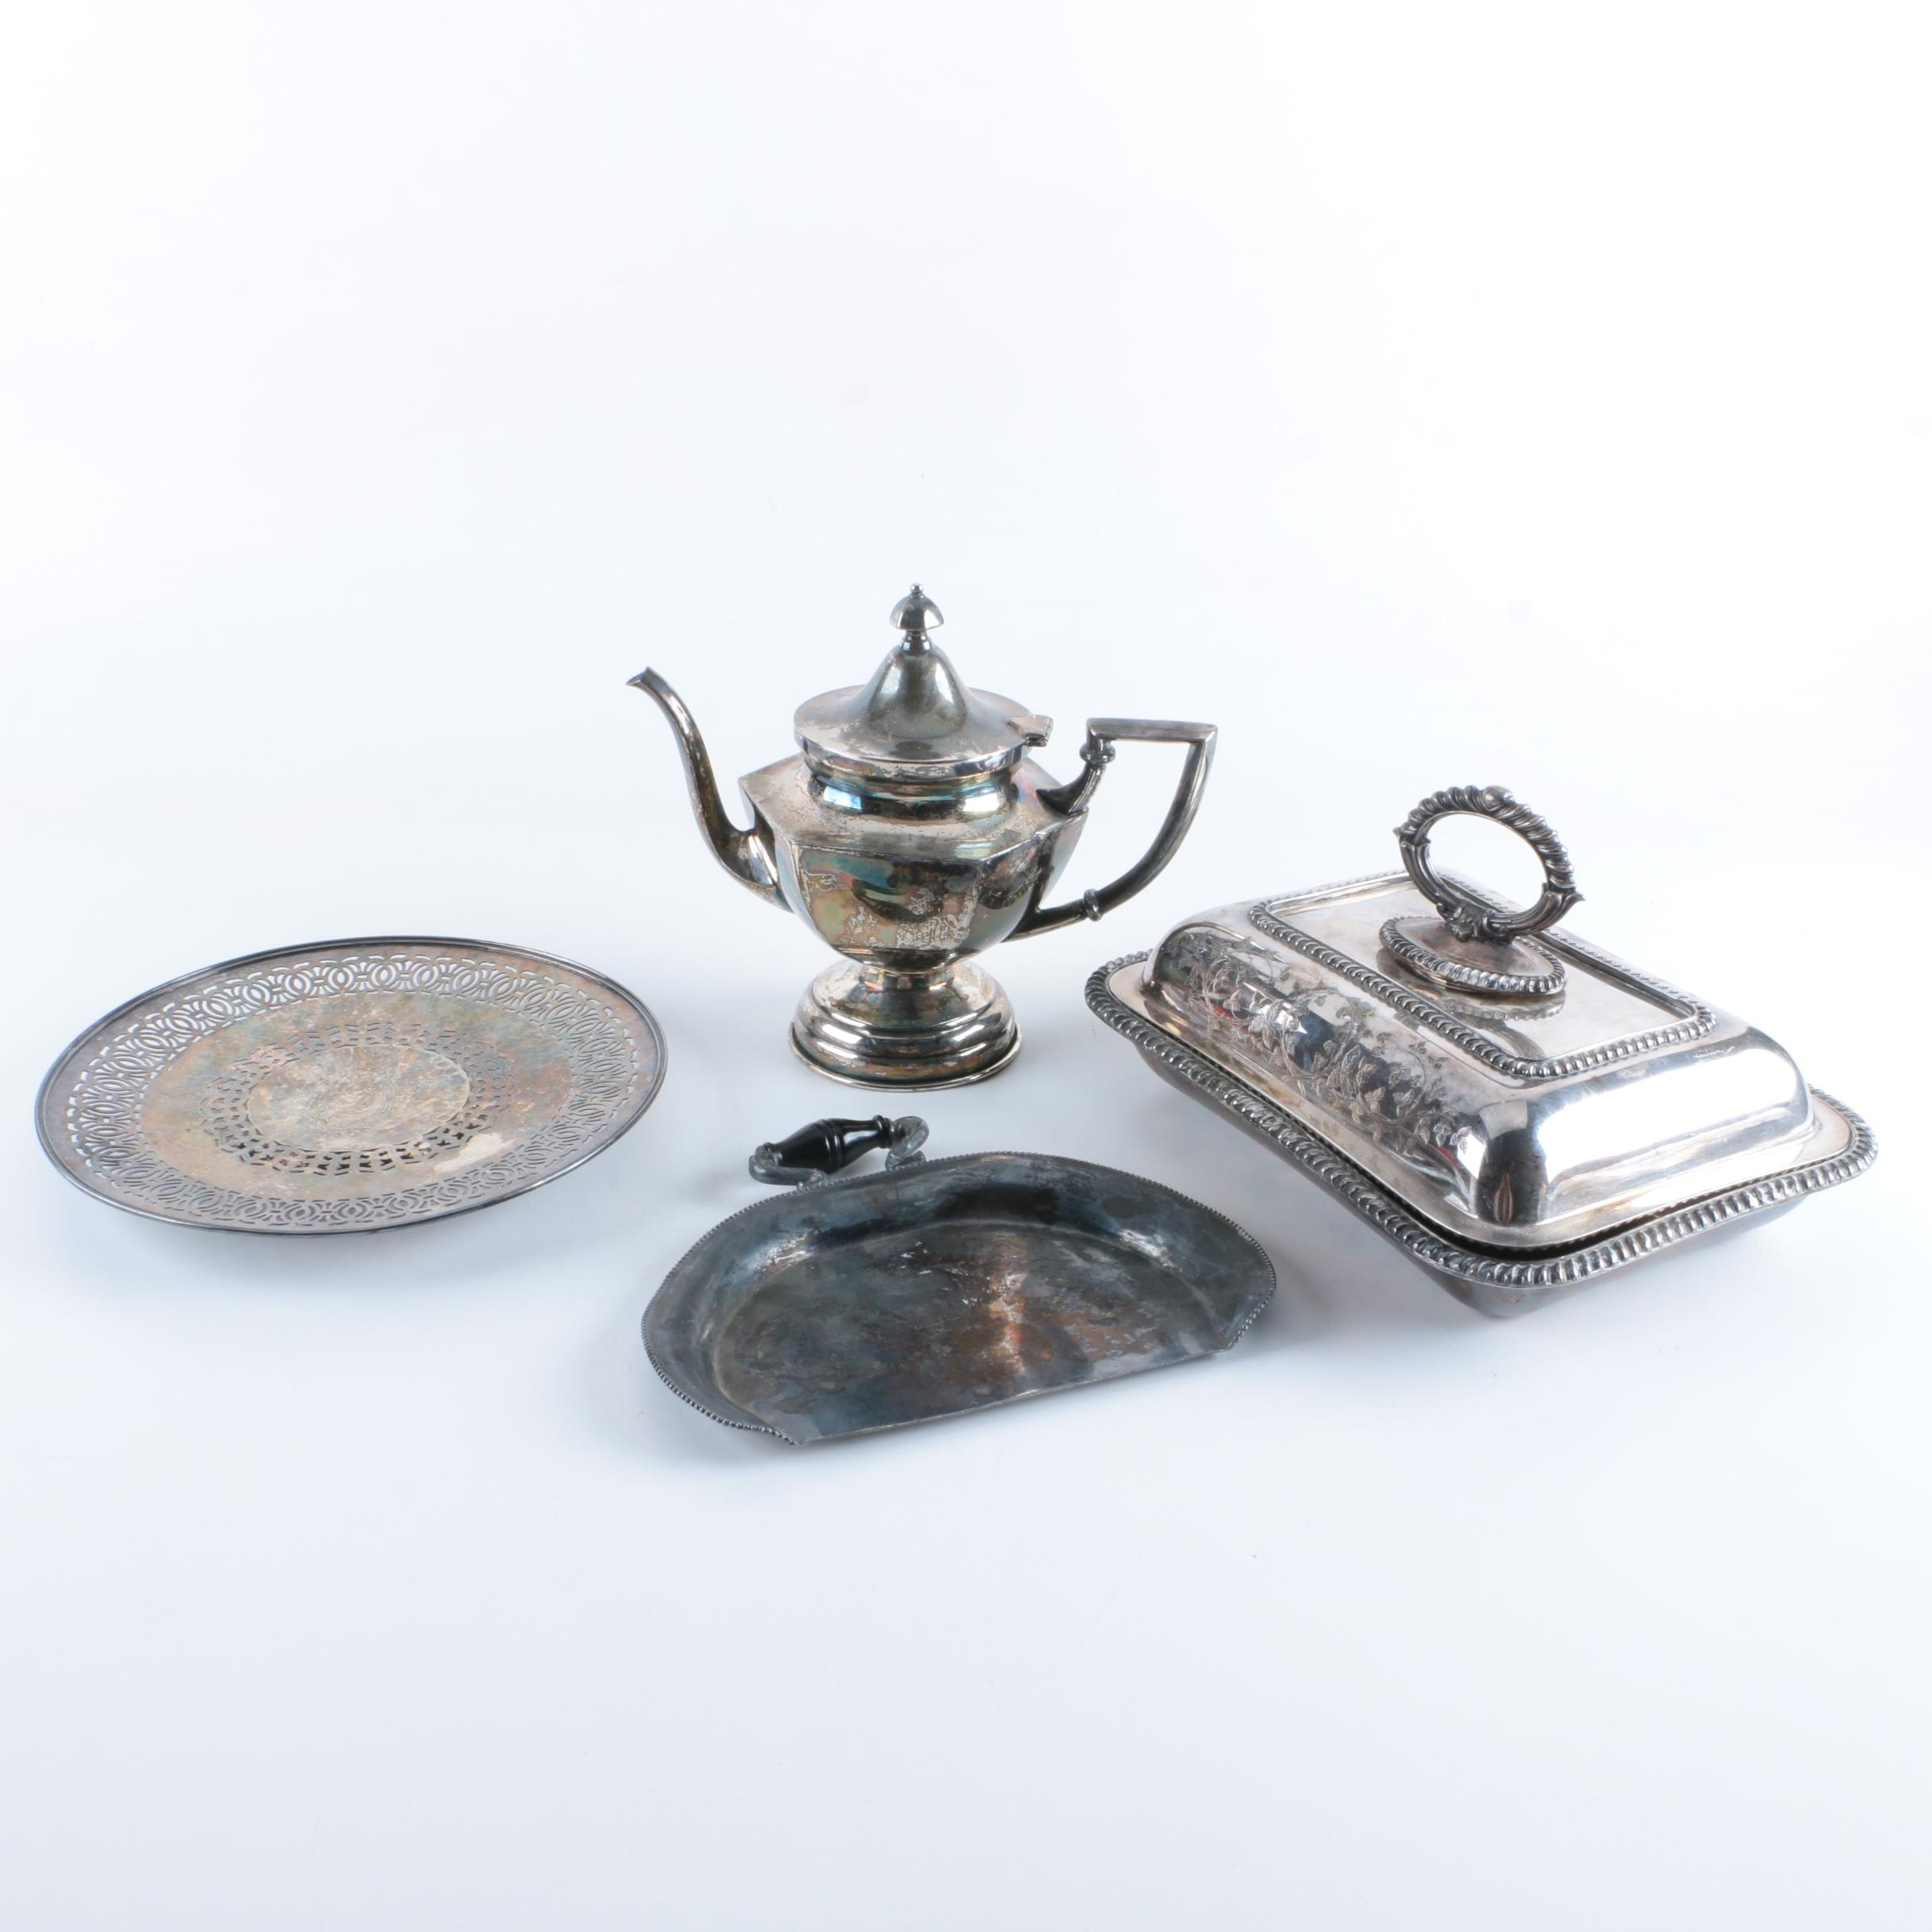 EG Webster & Son Silver Plate Crumb Catcher and Silver Plate Serveware